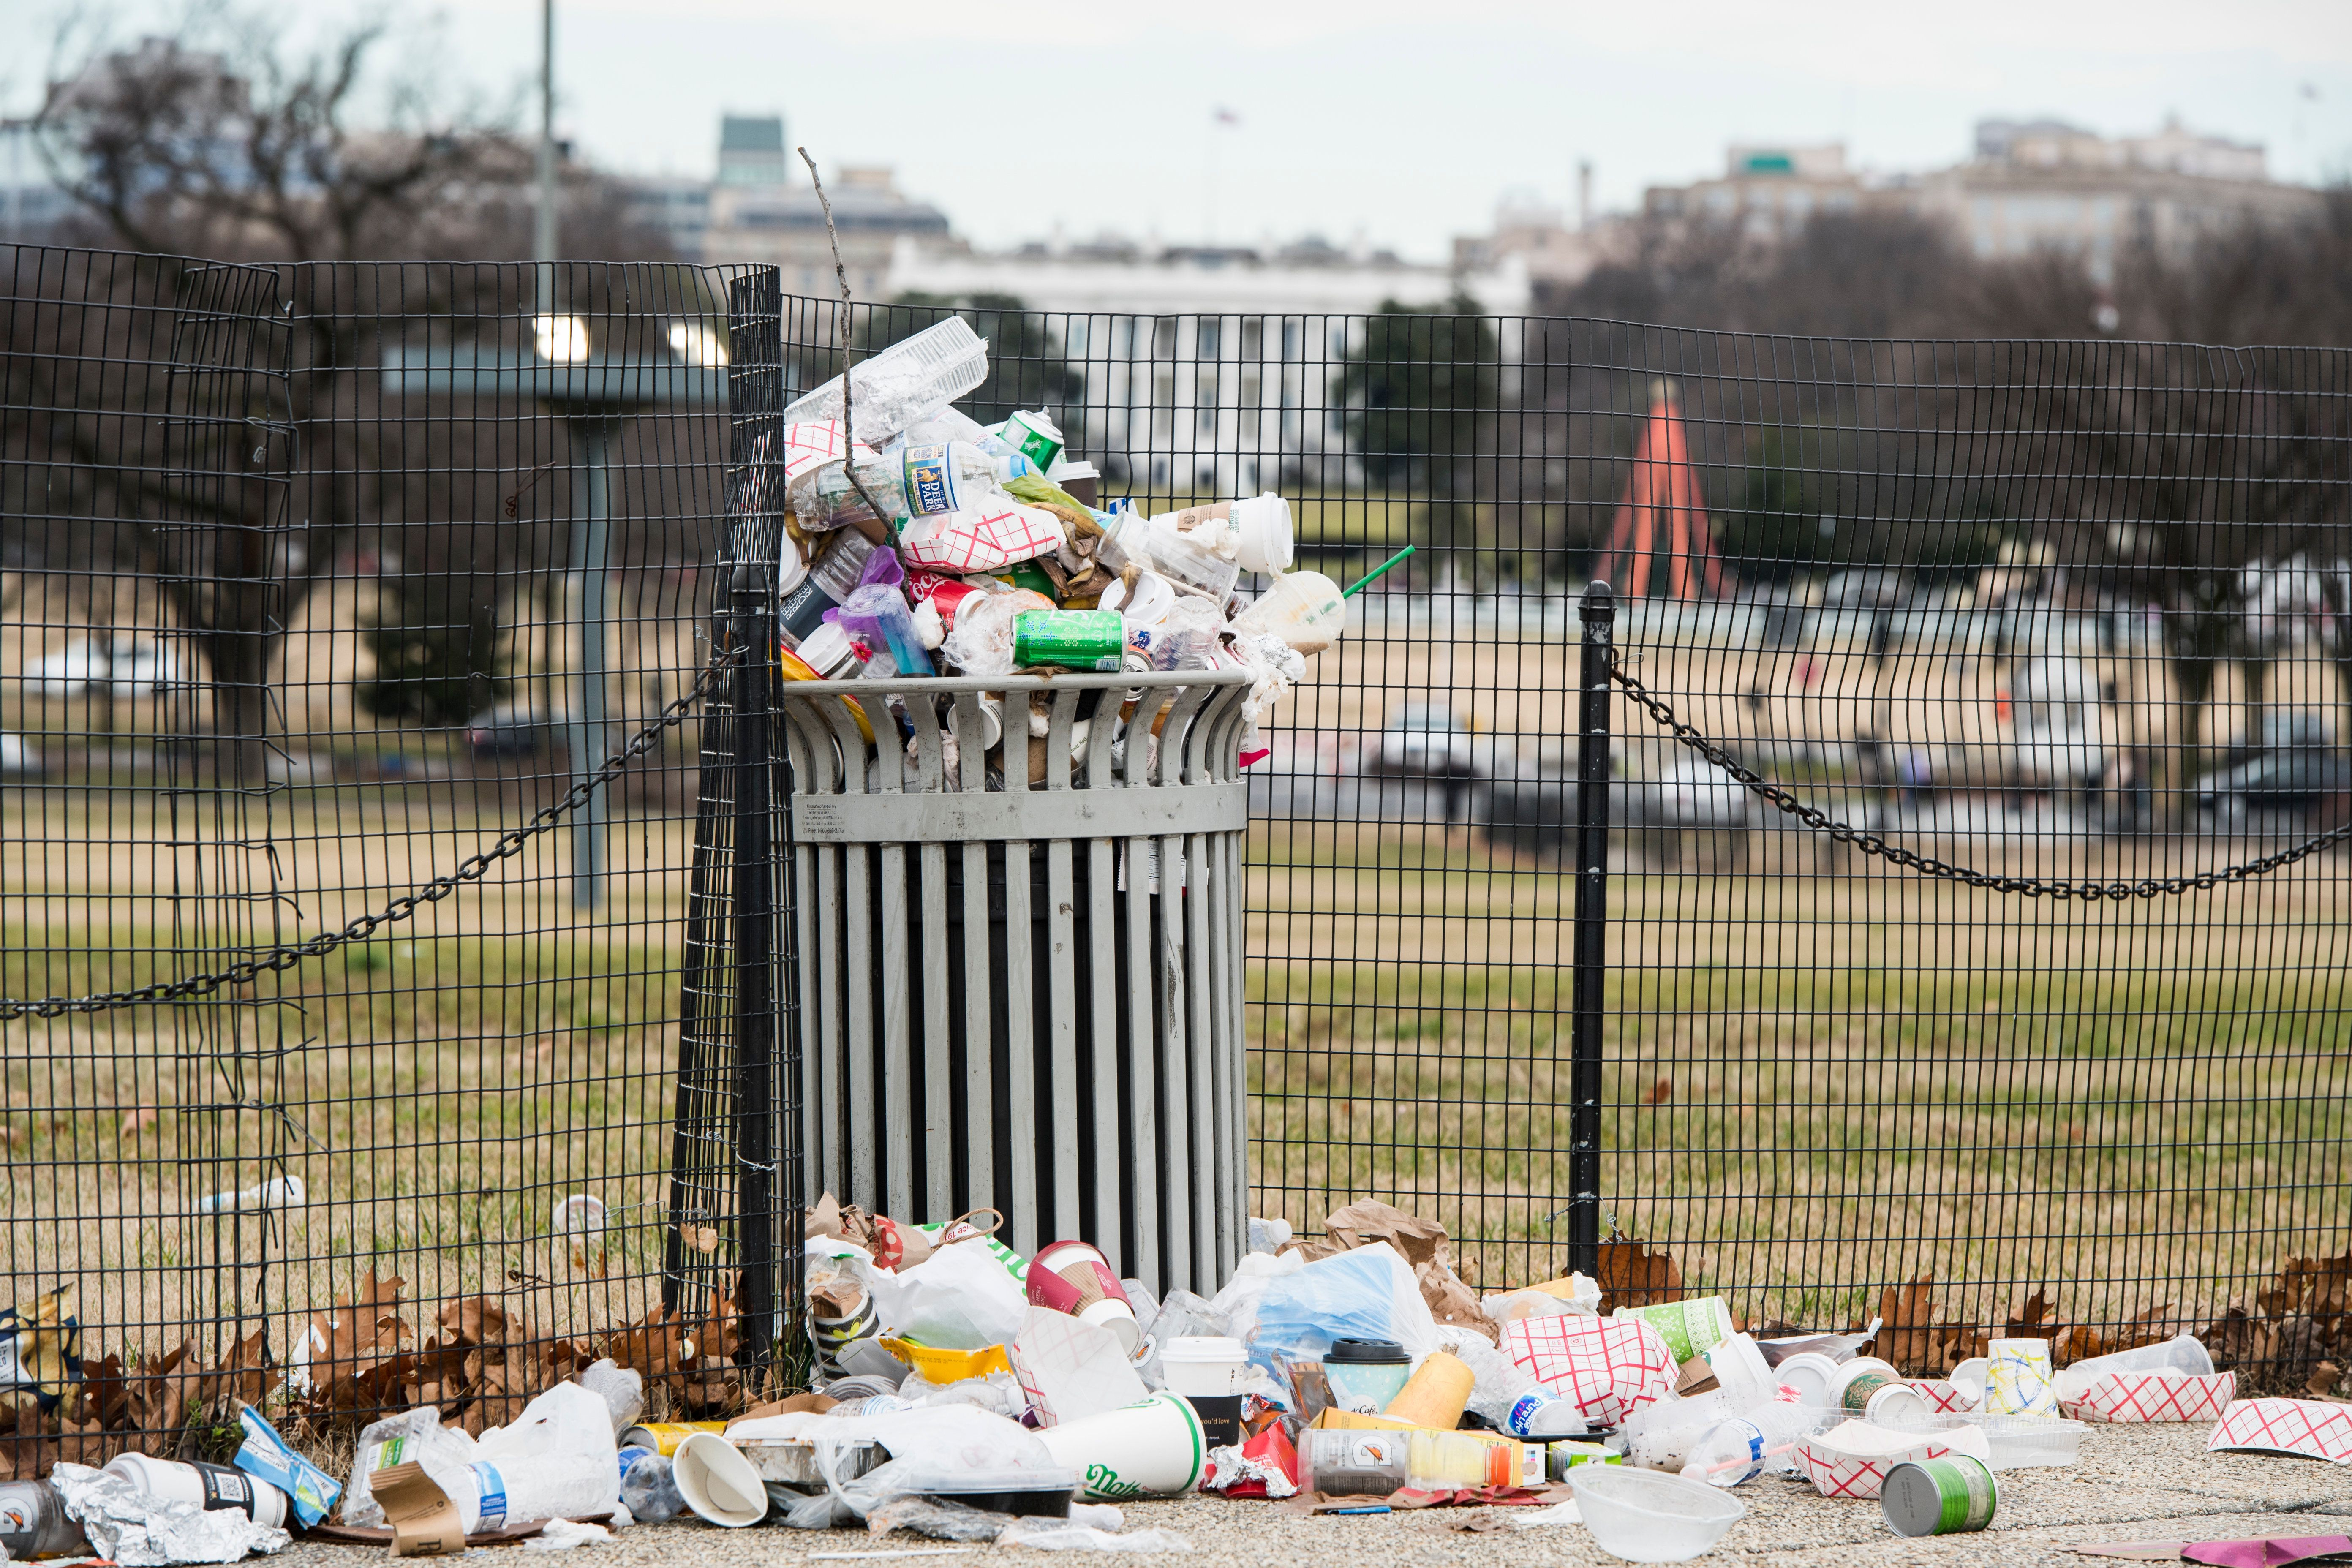 UNITED STATES - JANUARY 1: Garbage overflows a trash can on the National Mall across from the White House on Tuesday, Jan. 1, 2019. The National Park Service, which is responsible for trash removal, is not operating due to the goverment shut down. (Photo By Bill Clark/CQ Roll Call)